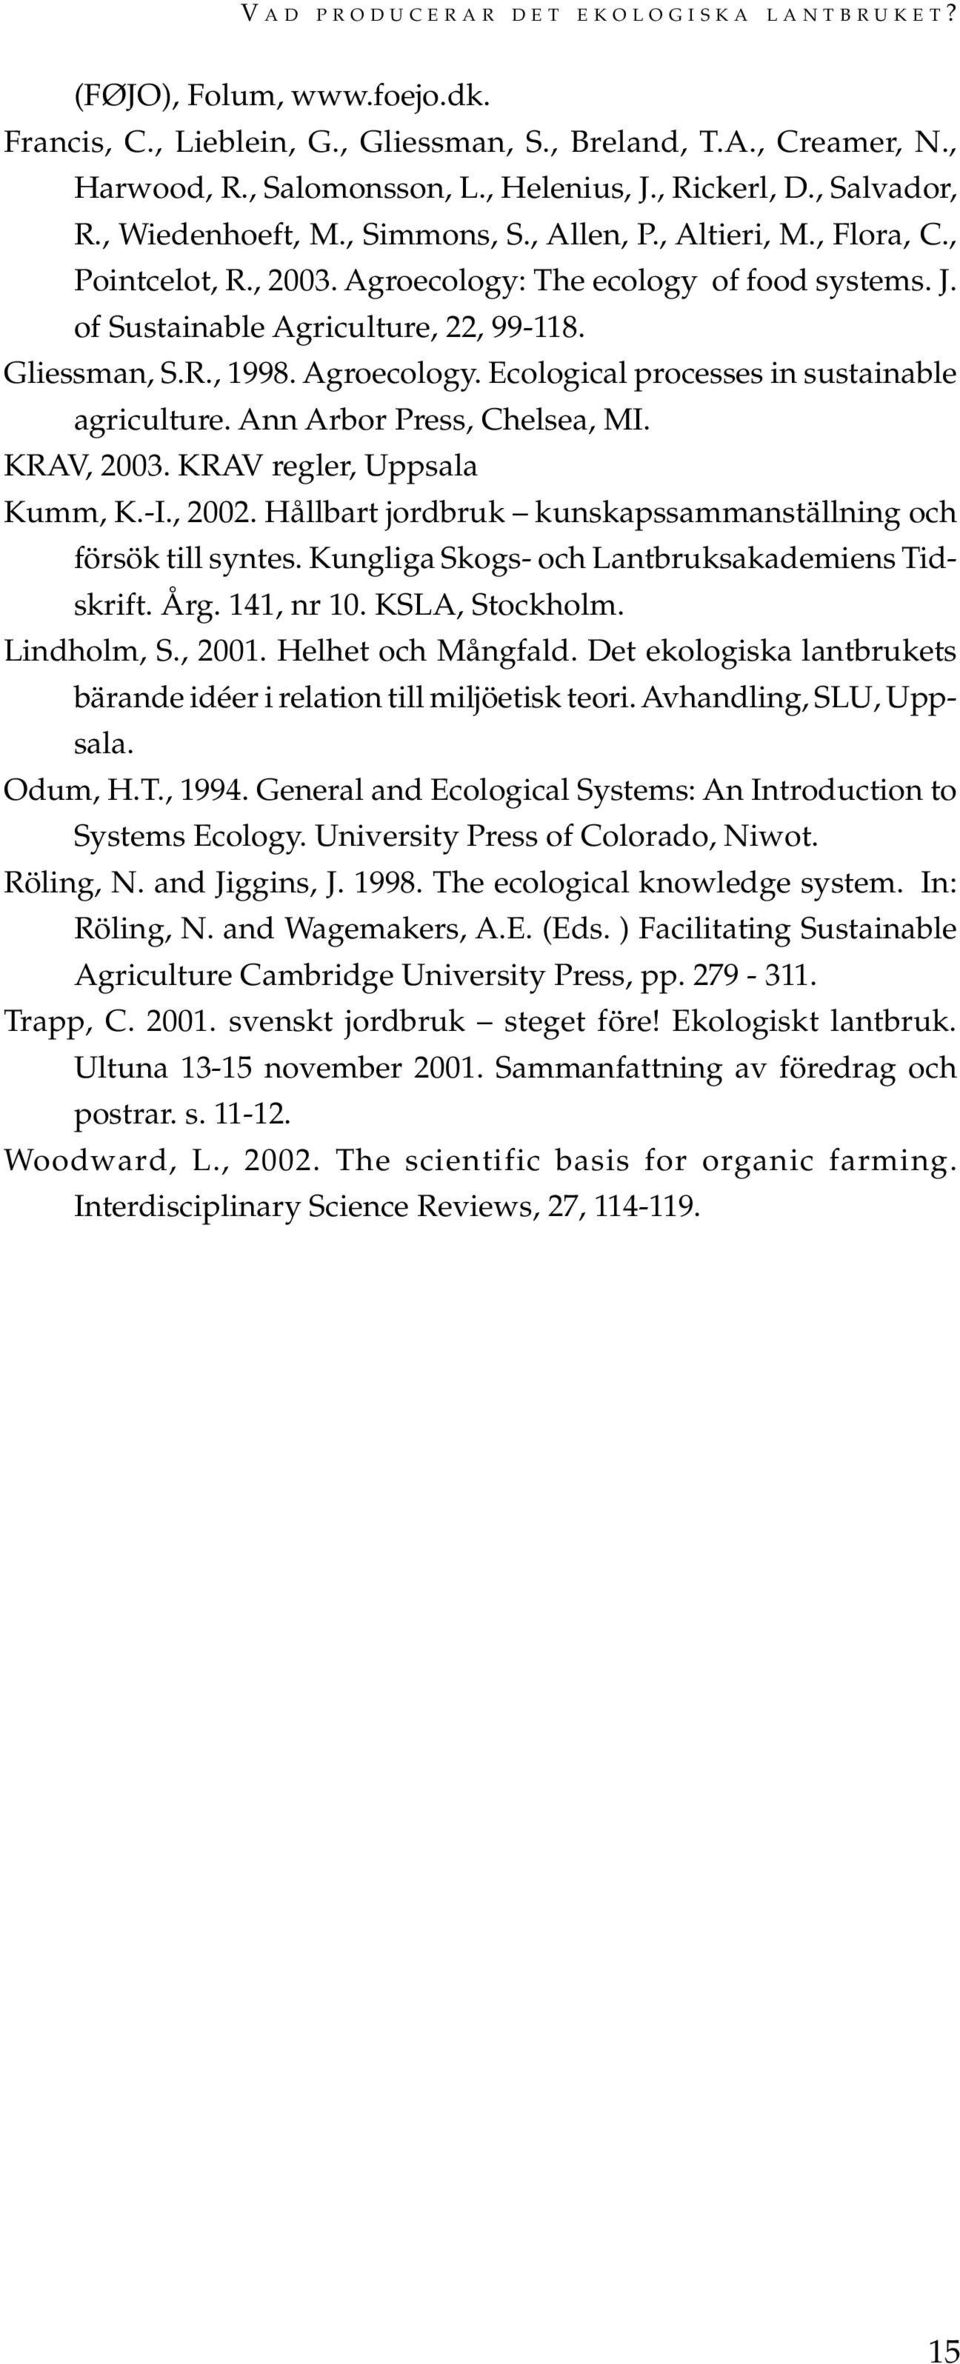 Gliessman, S.R., 1998. Agroecology. Ecological processes in sustainable agriculture. Ann Arbor Press, Chelsea, MI. KRAV, 2003. KRAV regler, Uppsala Kumm, K.-I., 2002.